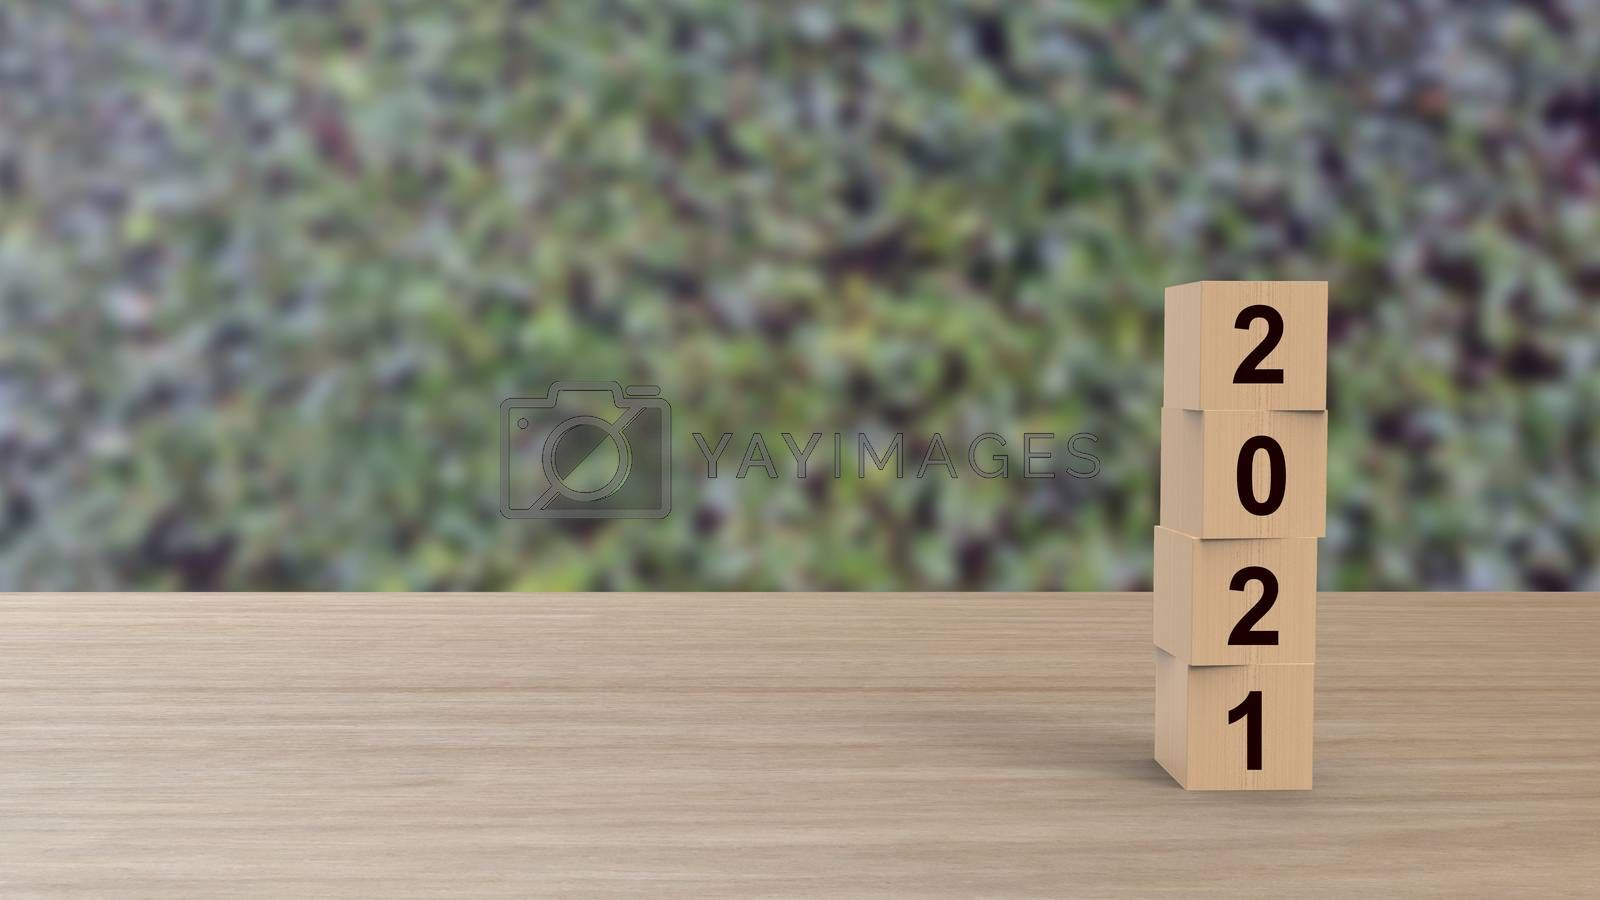 2021 numbers word Wooden cubes on table vertical over background leaves green HD, mock up, template, banner with copy space for text, Happy New Year design concept. Celebration greeting, 3d render by Andreajk3